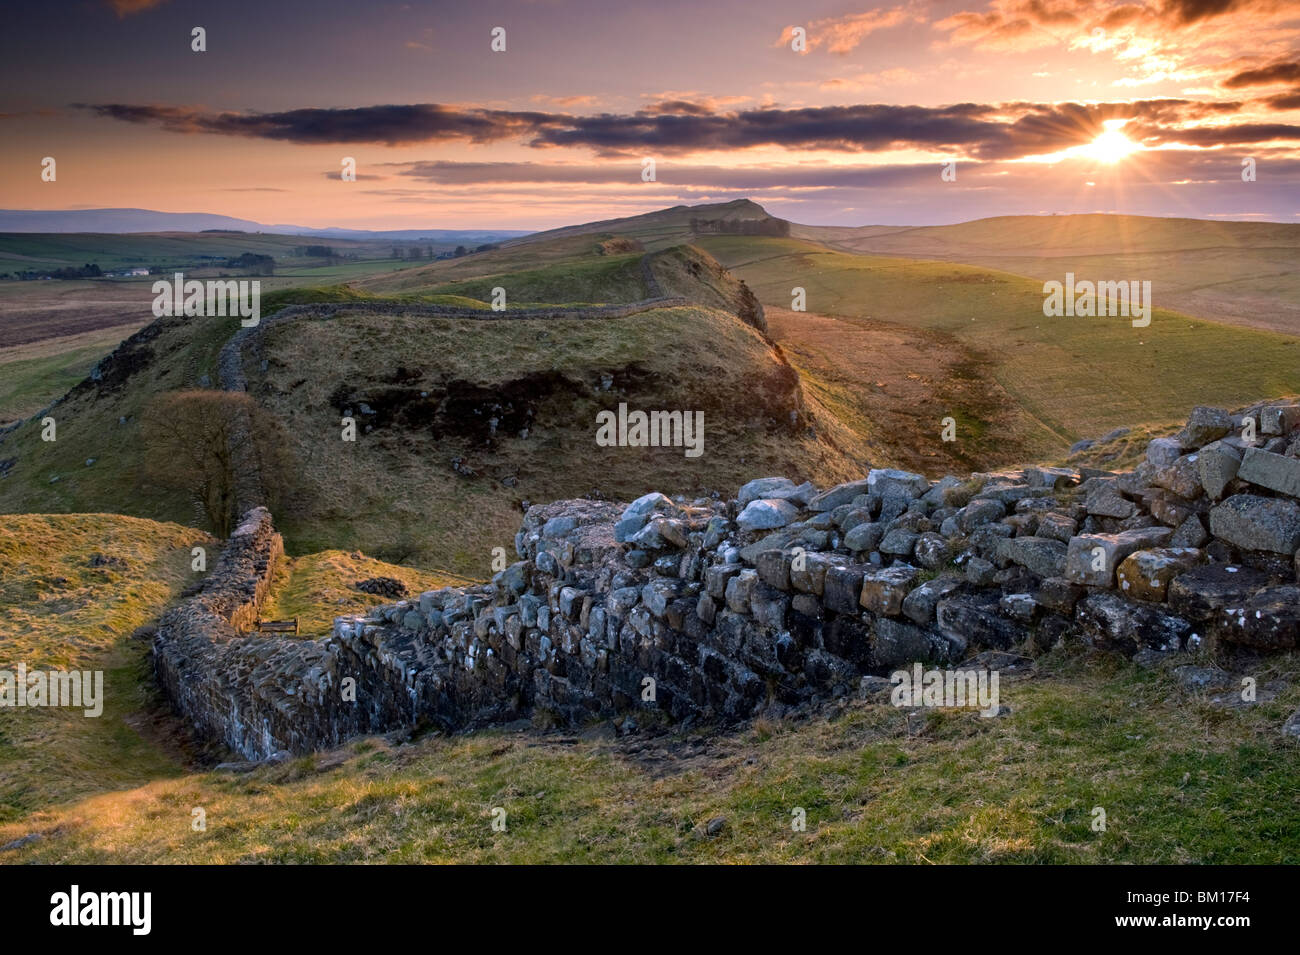 Sunset at Hadrian's Wall, Northumberland National Park, England, UK - Stock Image